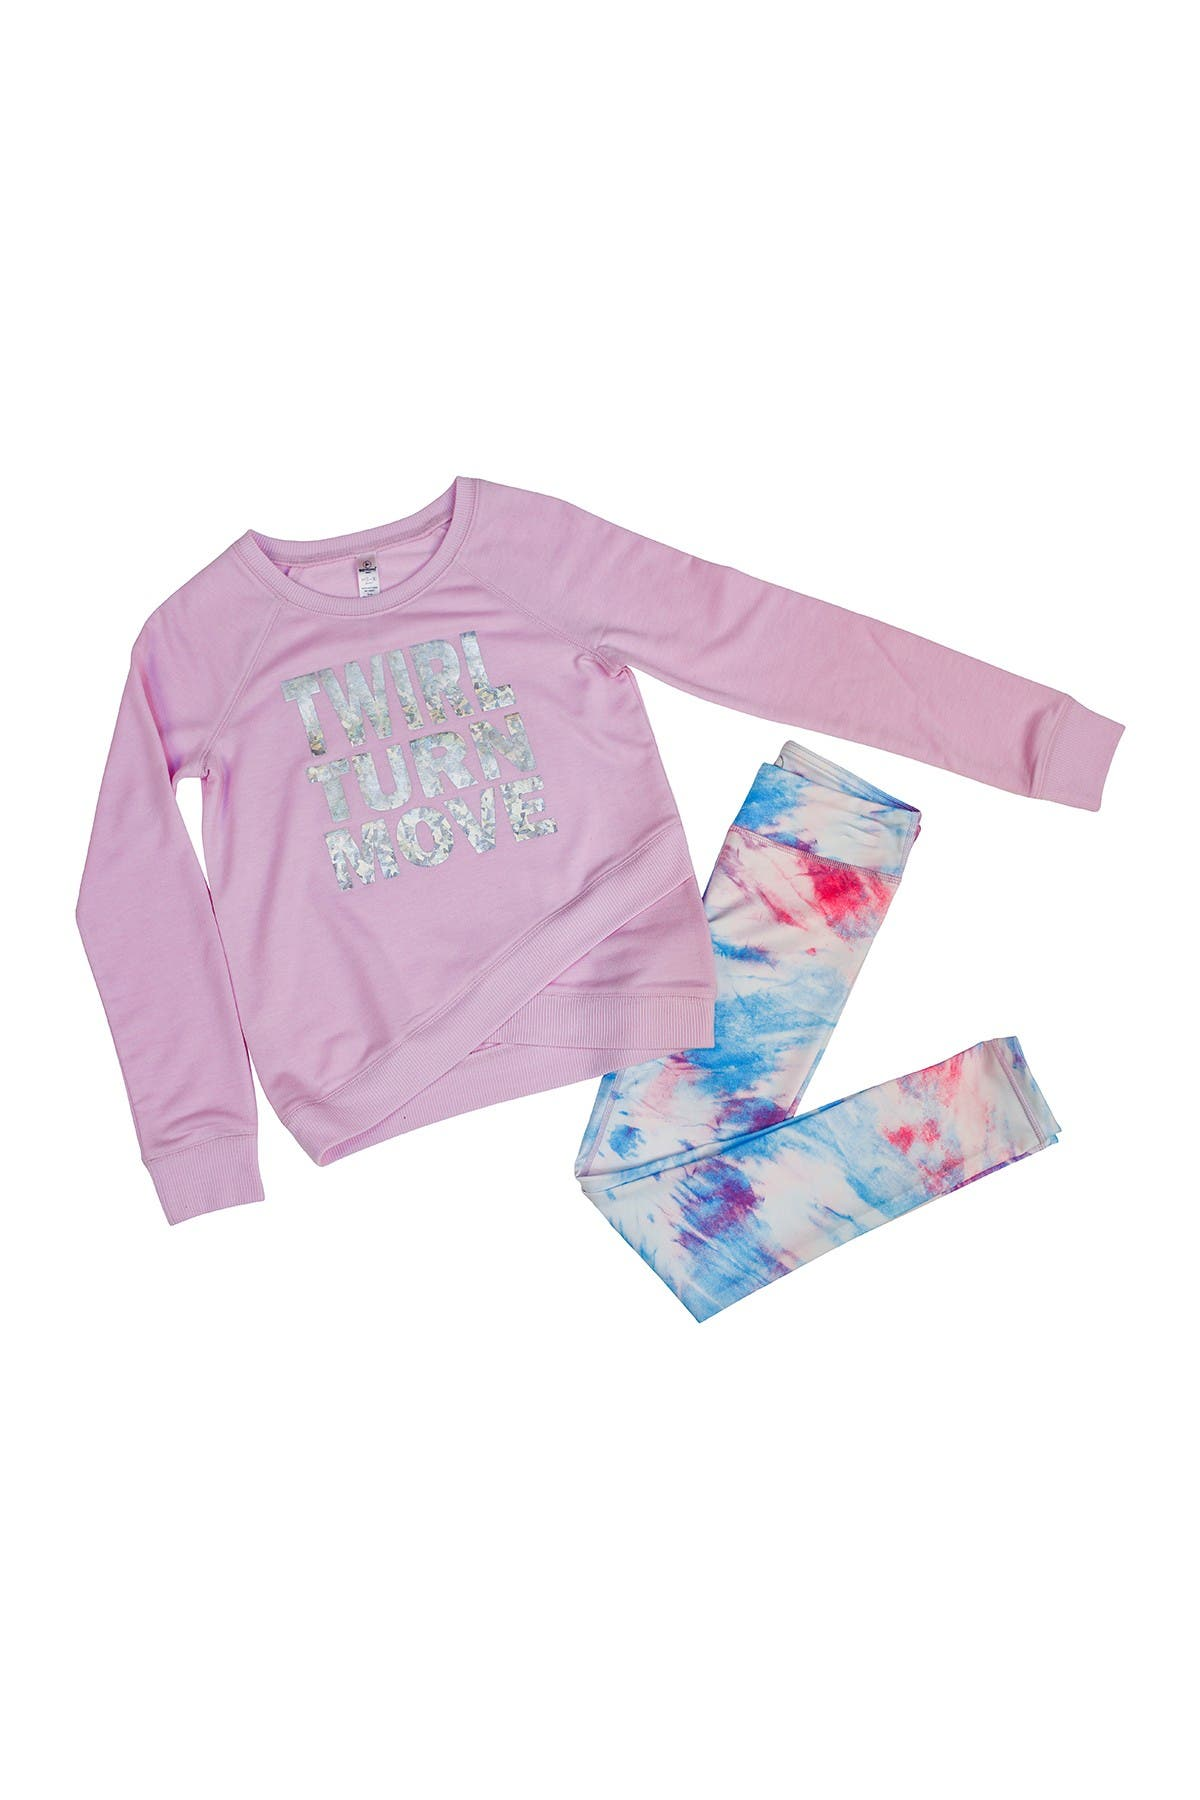 Image of 90 Degree By Reflex Cross Over Sweater & Printed Legging Set